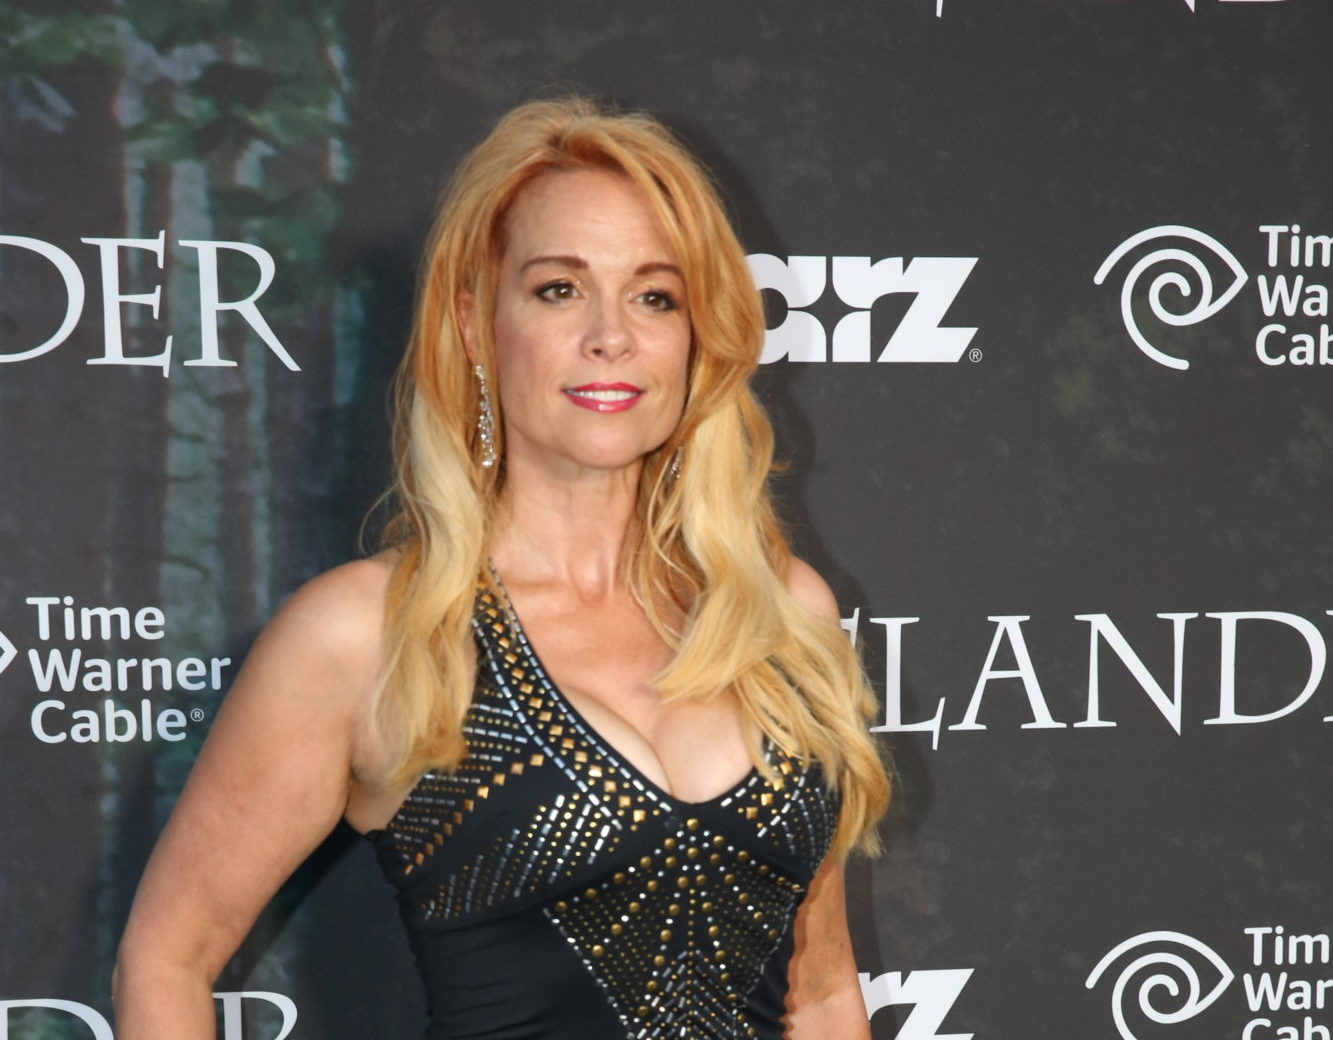 Chase Masterson doctor who